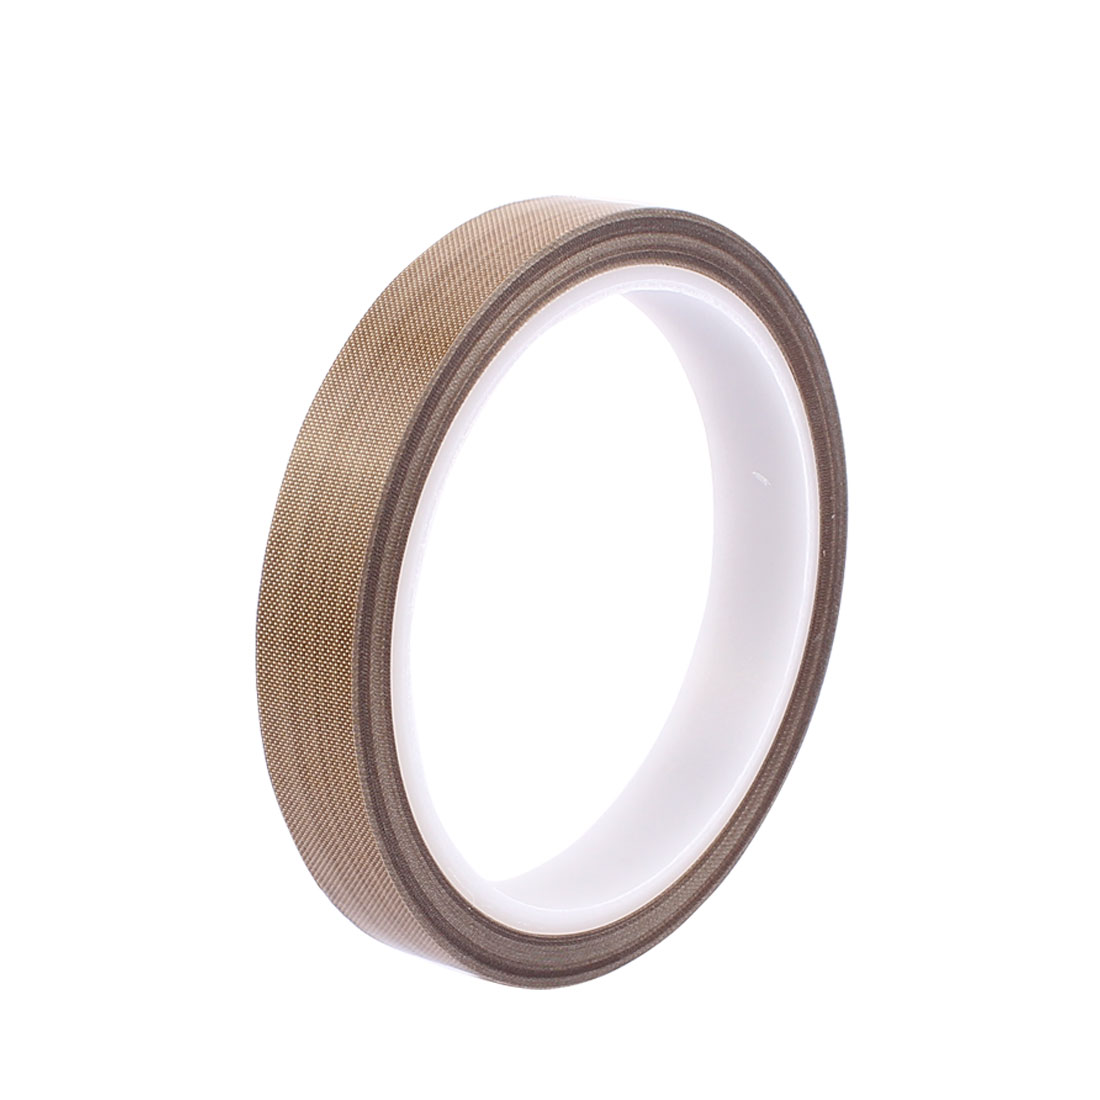 13mm Width 0.18mm Thickness 10M Long Nonstick High Temperature PTFE Adhesive Tape